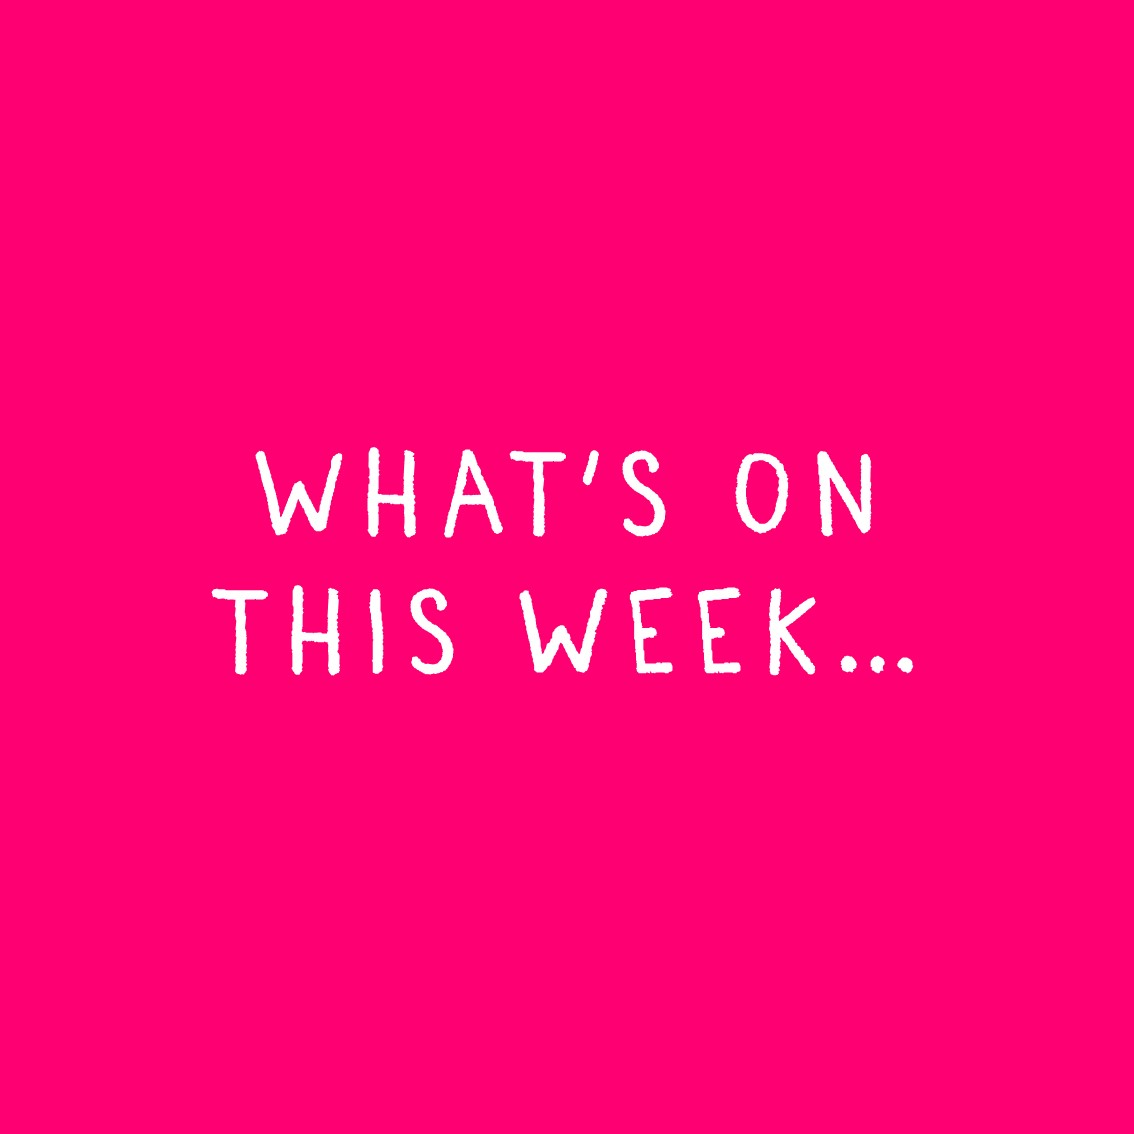 We have a variety of groups and classes taking place at Maggie's in the week ahead. Check out our Facebook page for more details. To join any of our groups, please give us a ring on 01224 645928 🧡